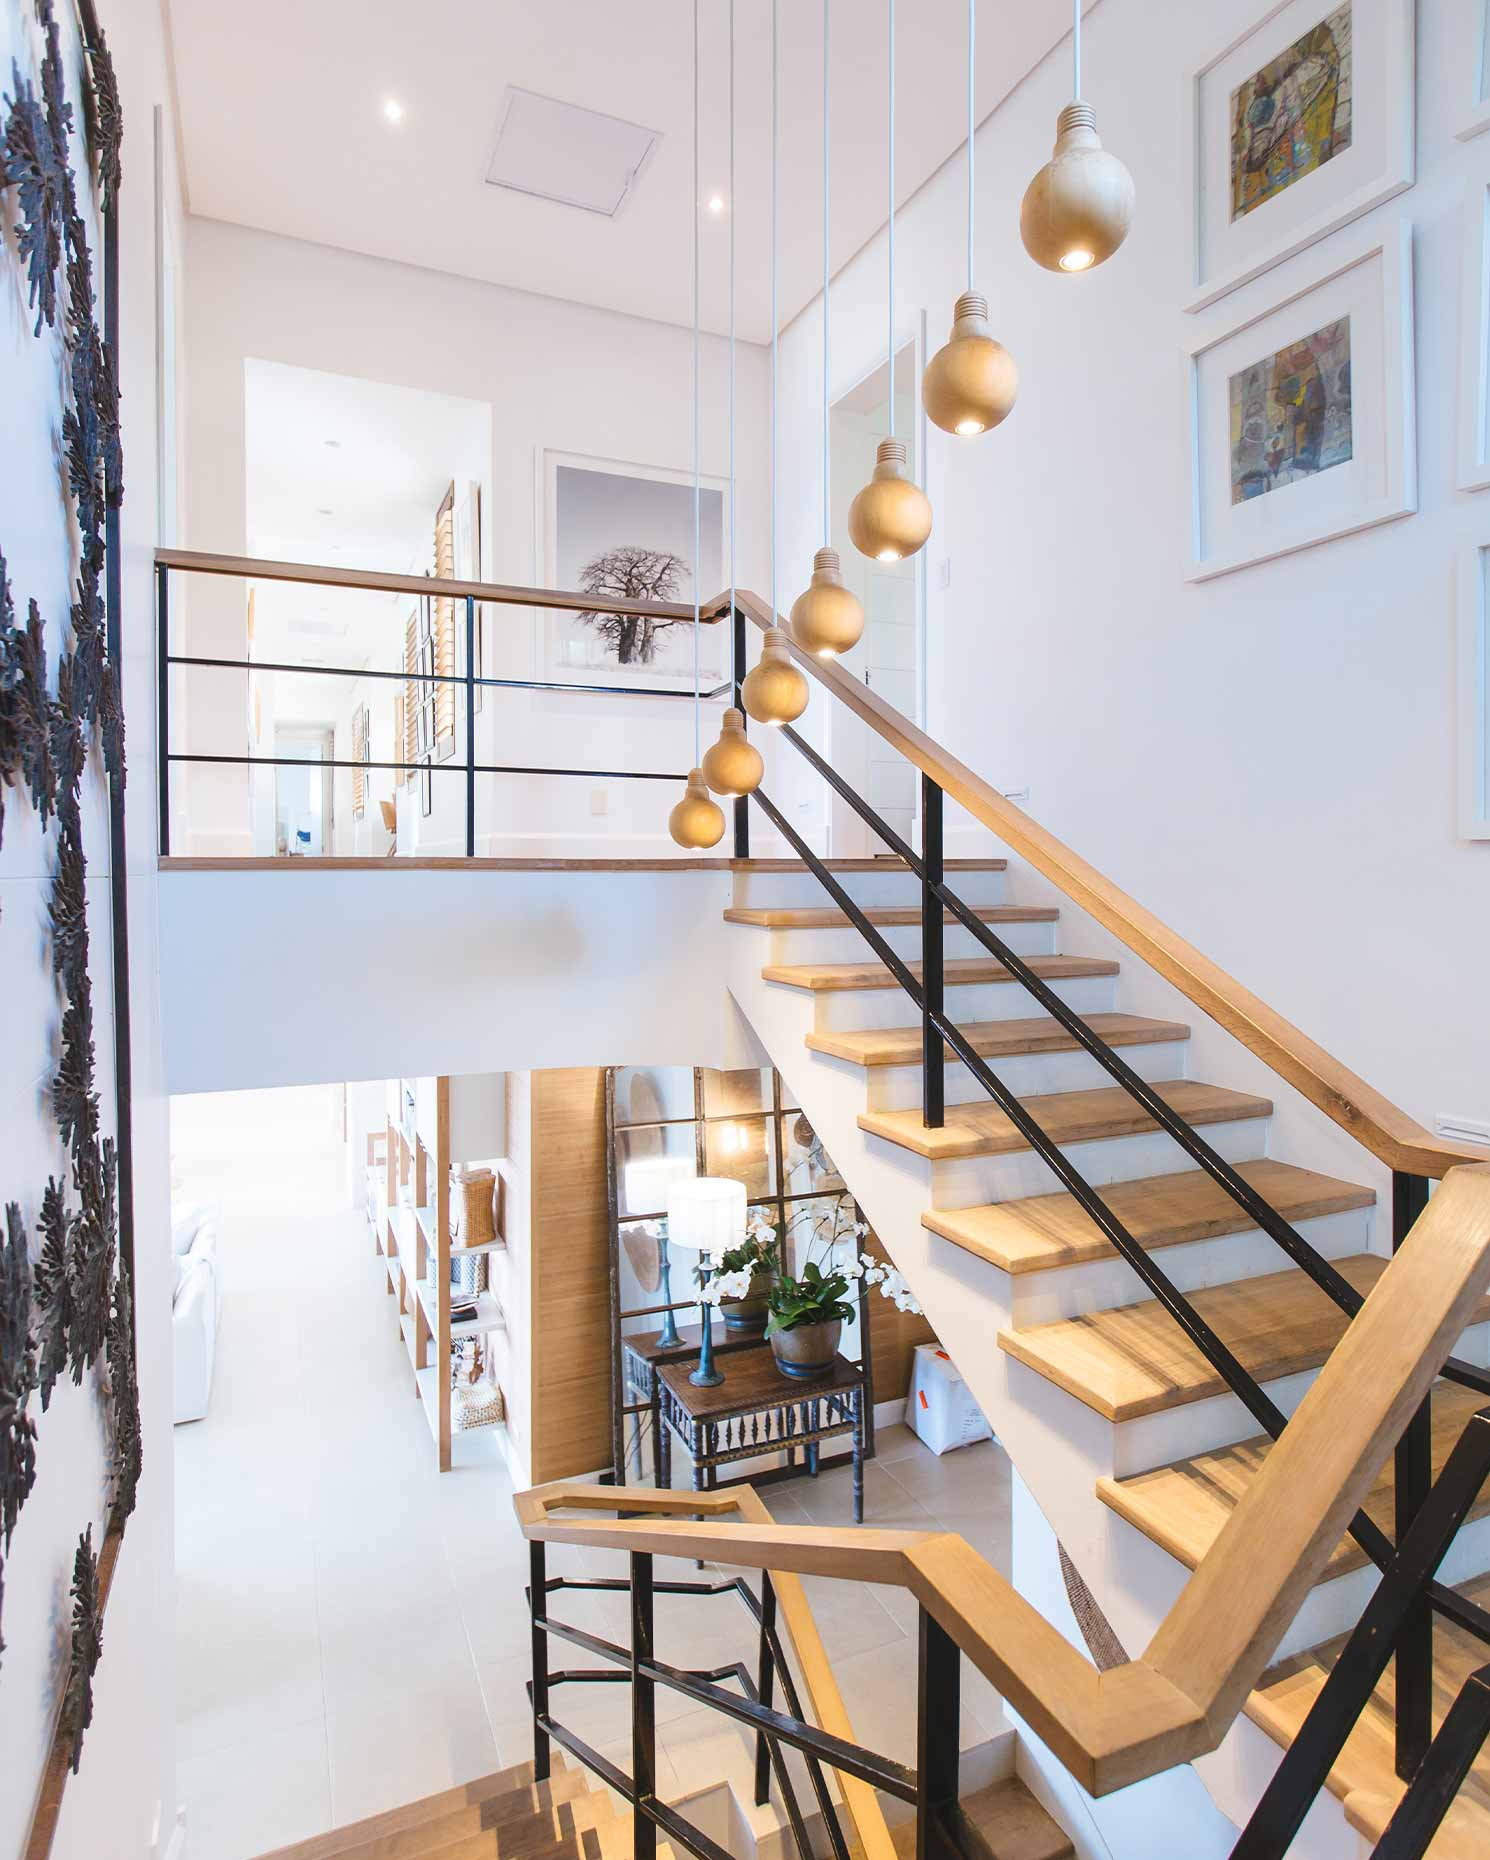 Two staircases anchored by lights in a modern house